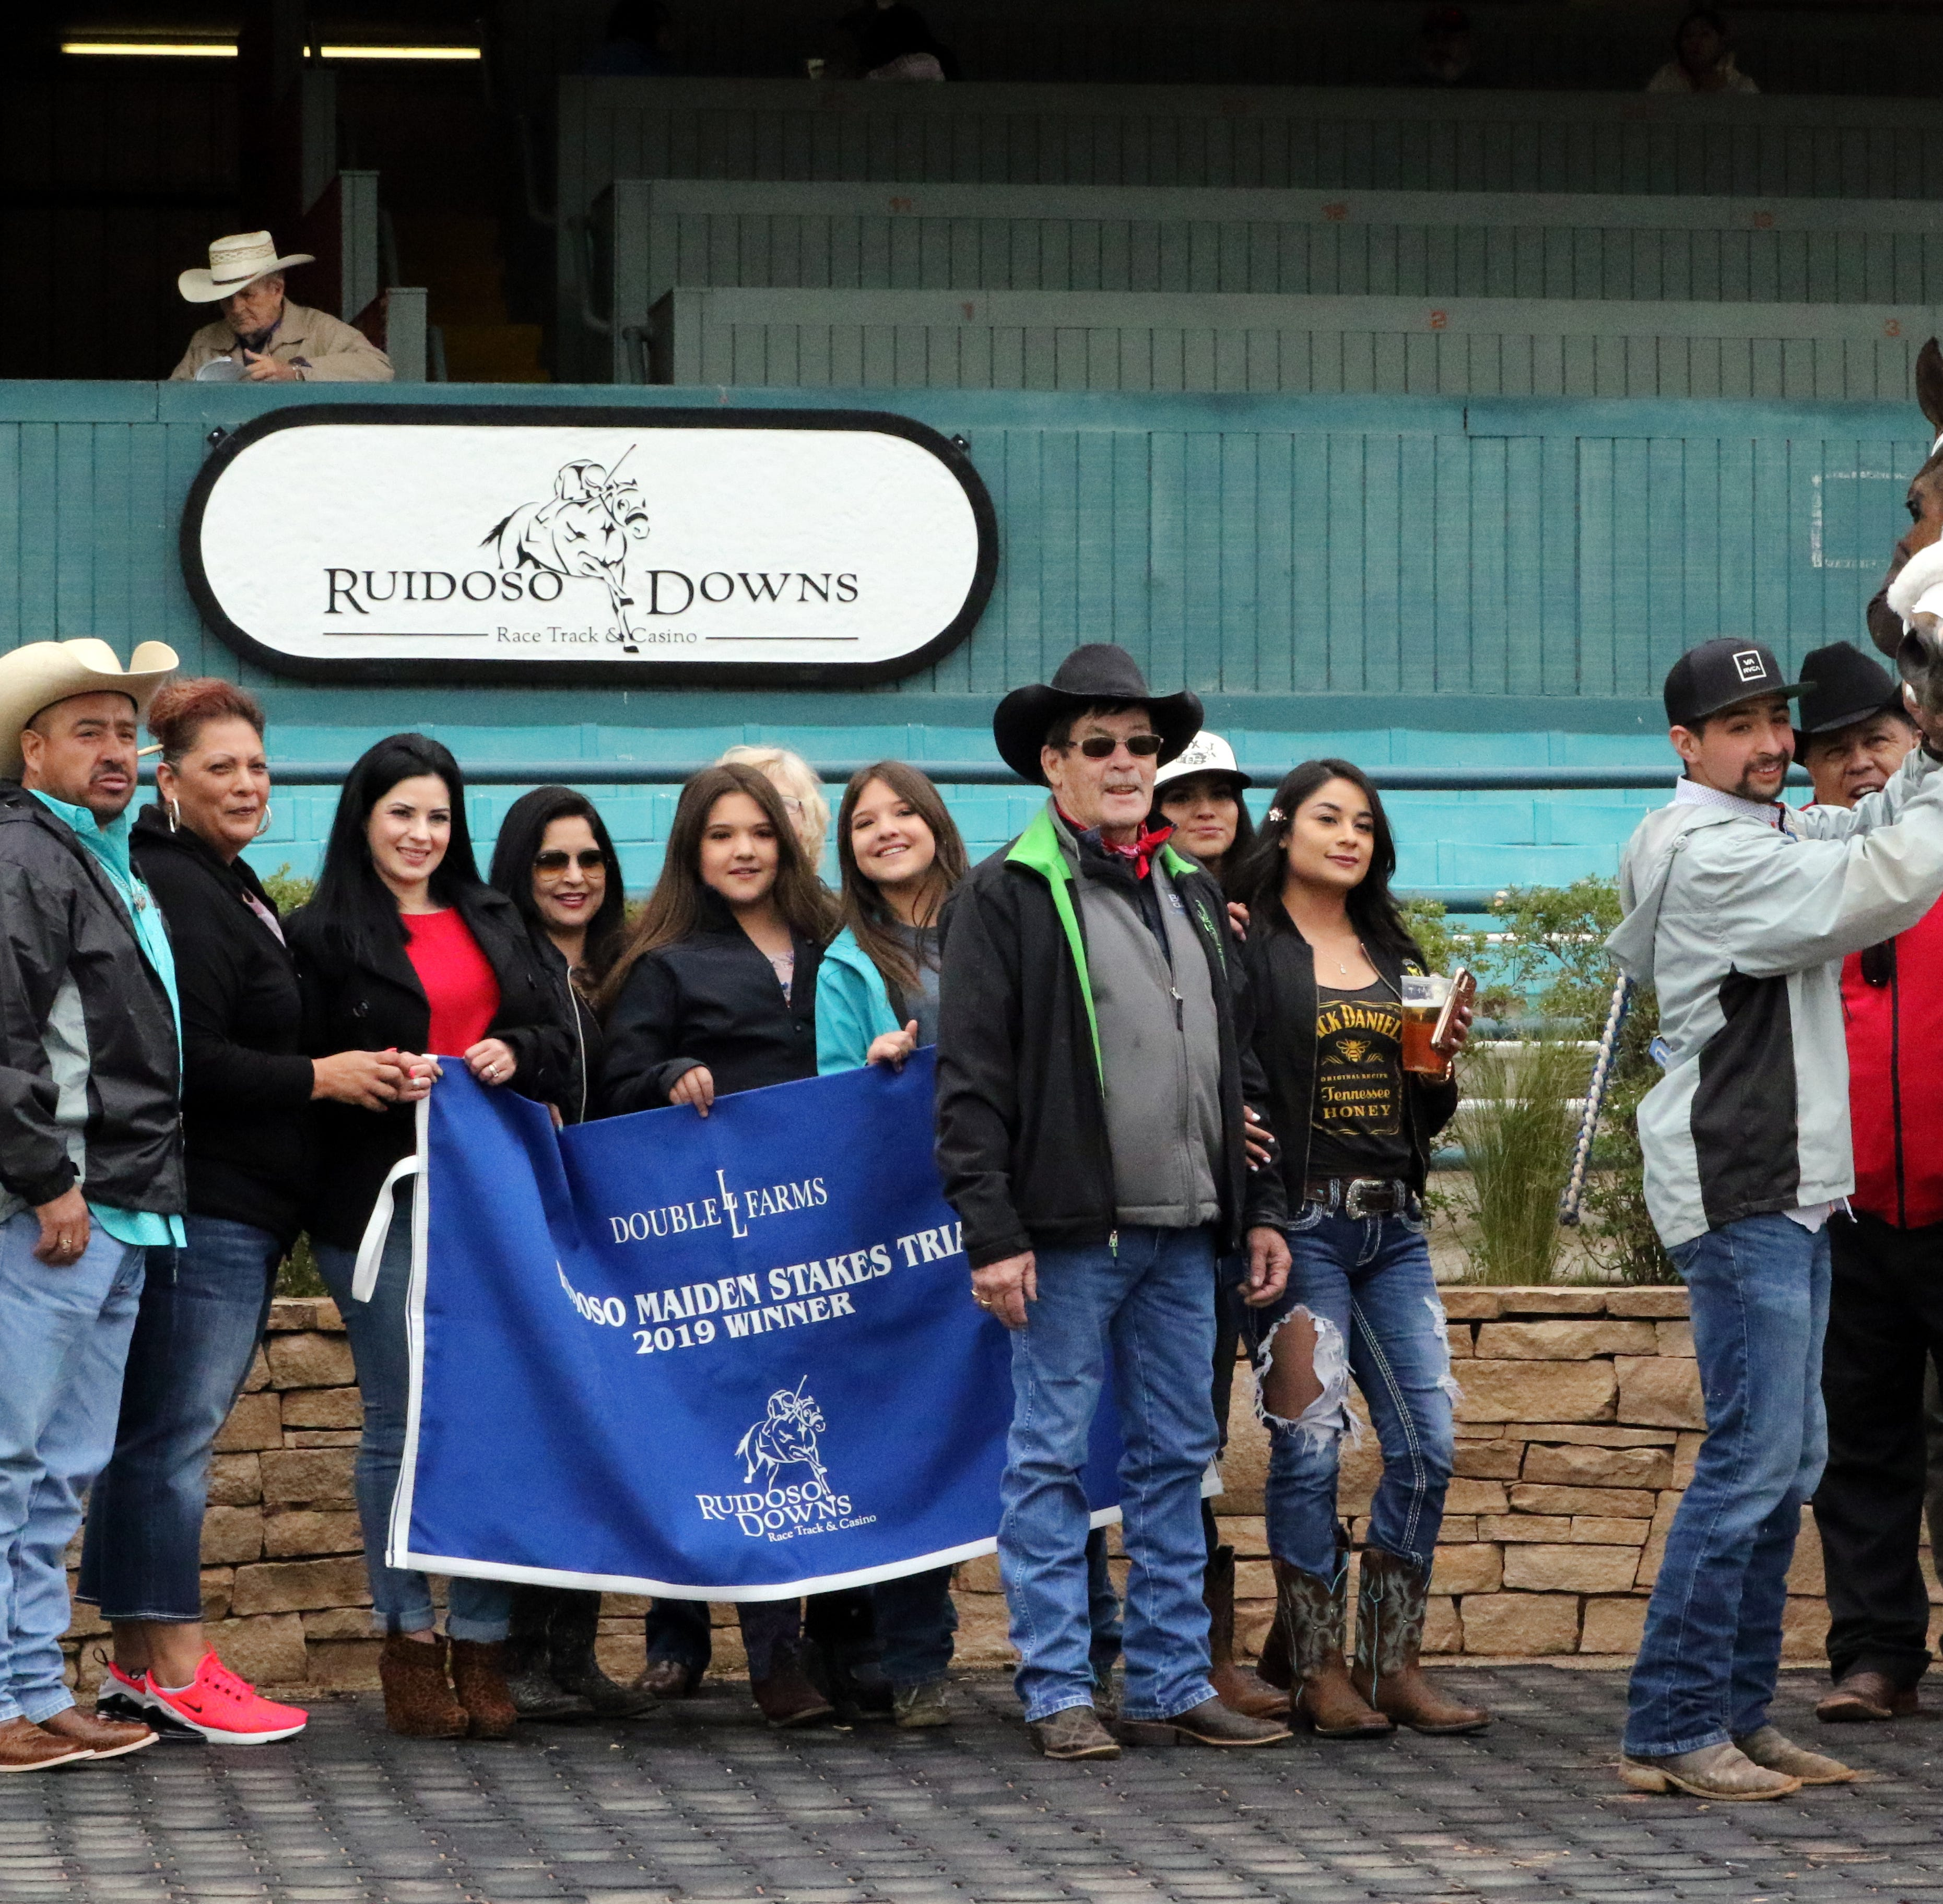 Ruidoso Downs Maiden Stakes Trials a big hit for horse racing fans